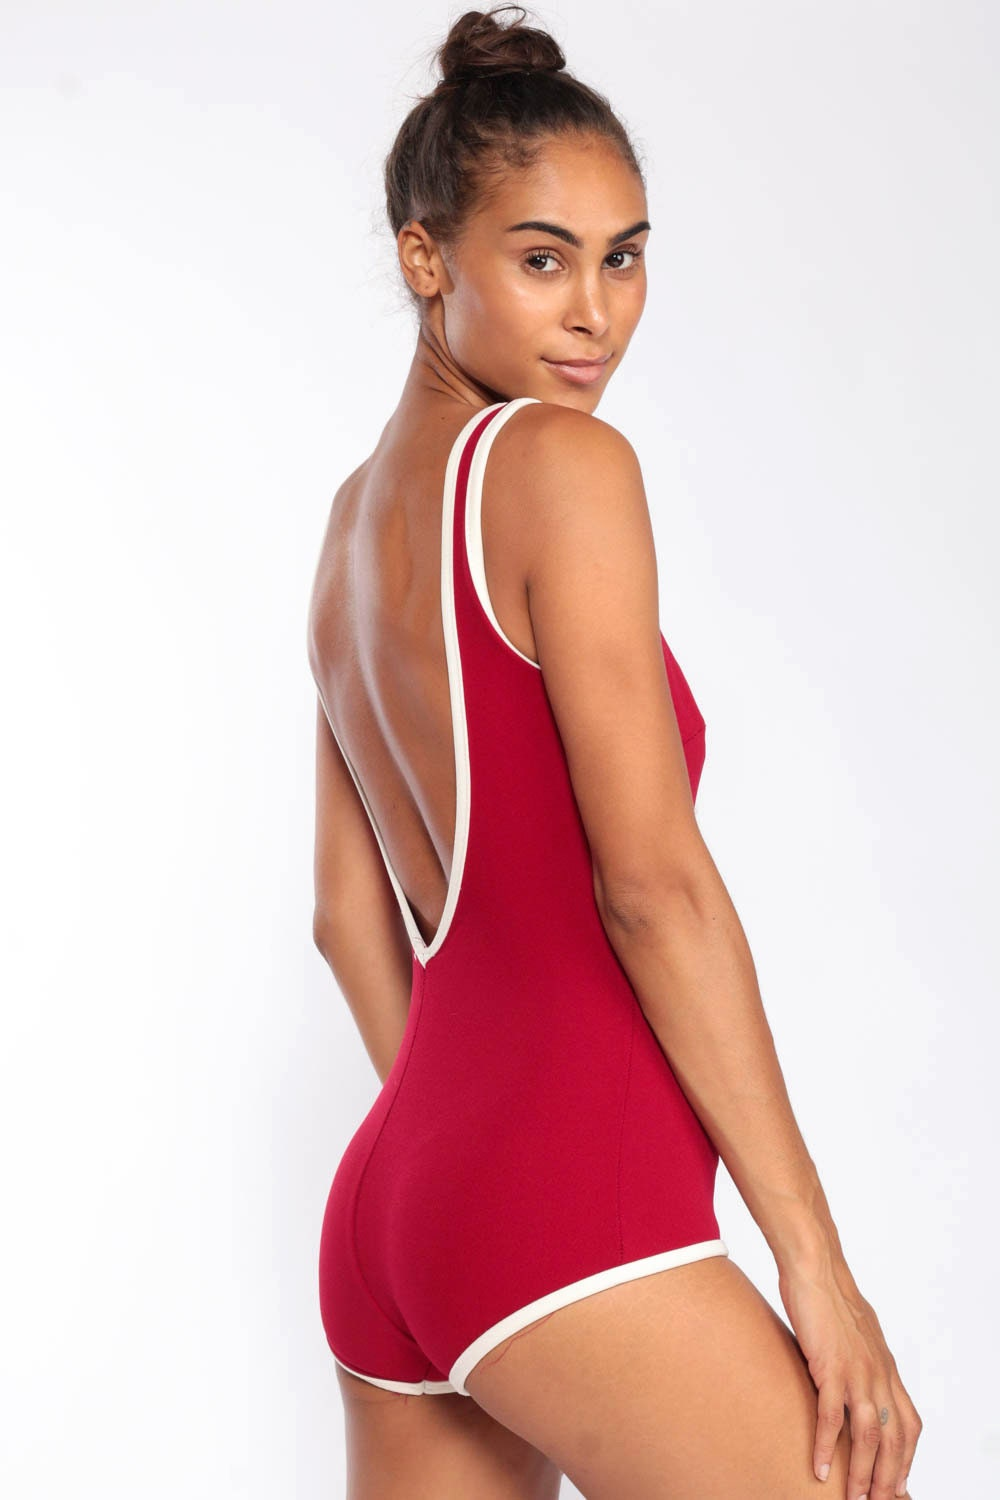 Red Bathing Suit CORSET Swimsuit 70s Swimsuit One Piece ...